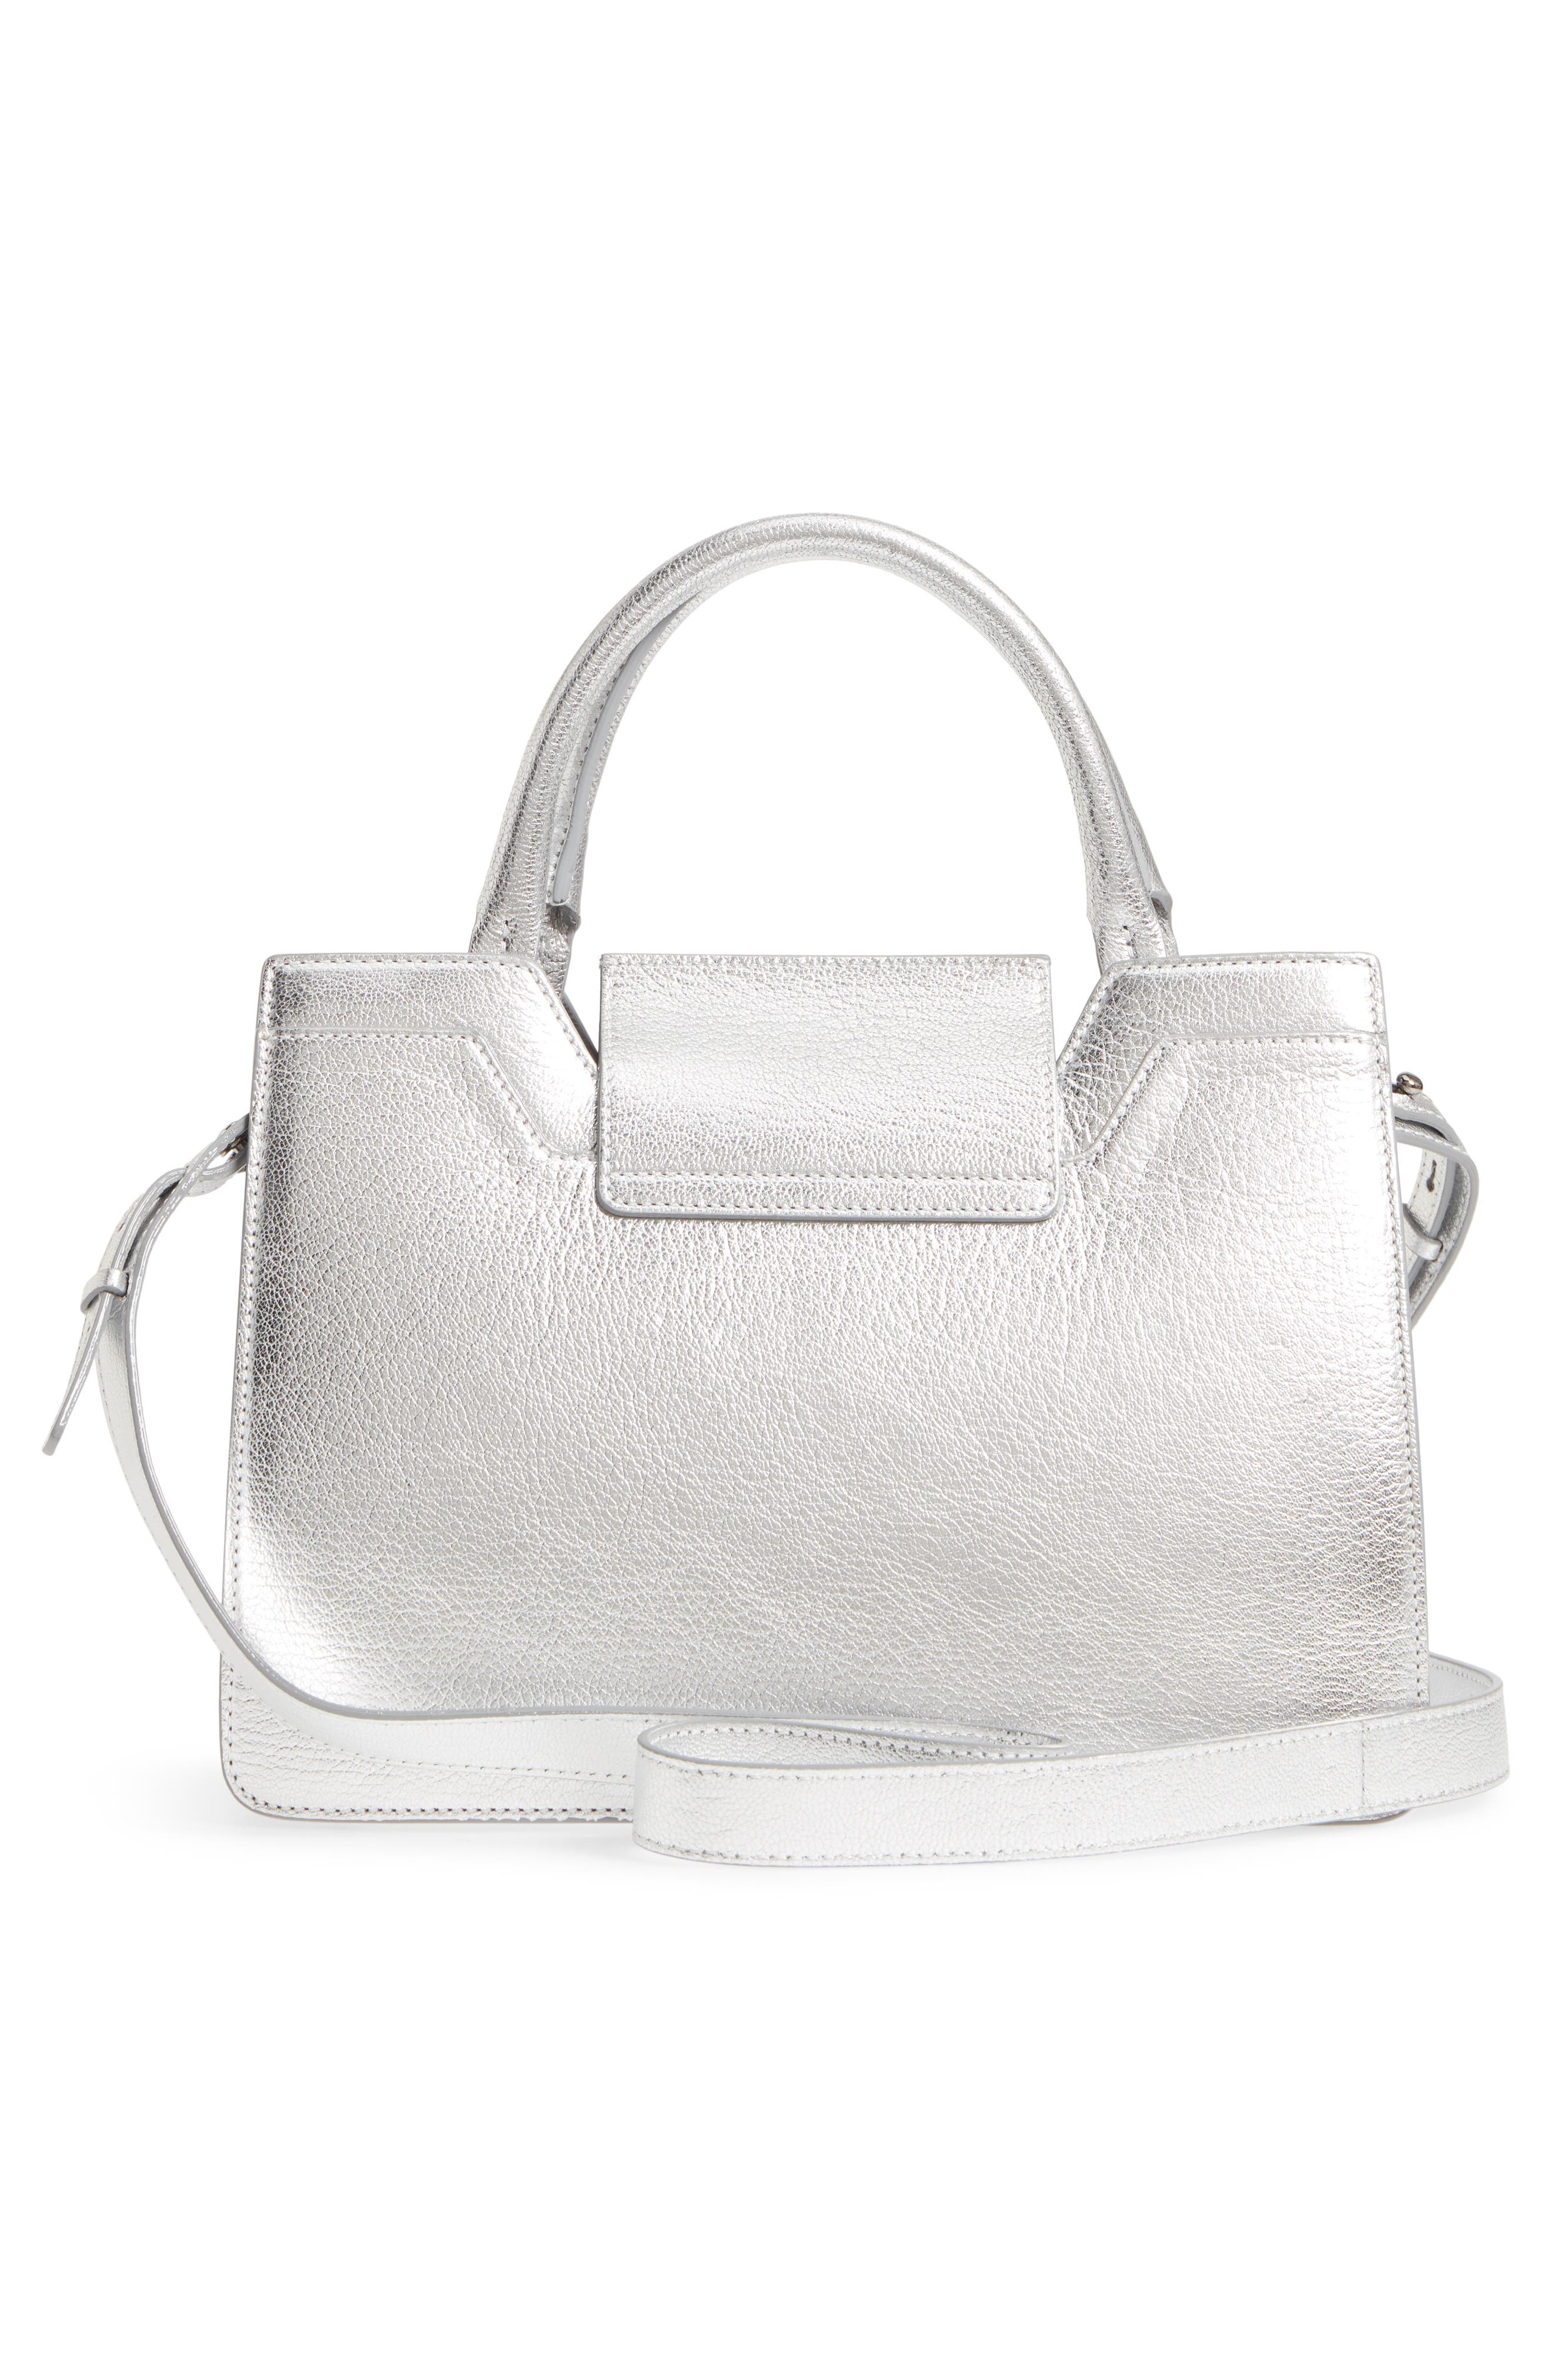 Small Rebel Metallic Leather Tote,                             Alternate thumbnail 3, color,                             040